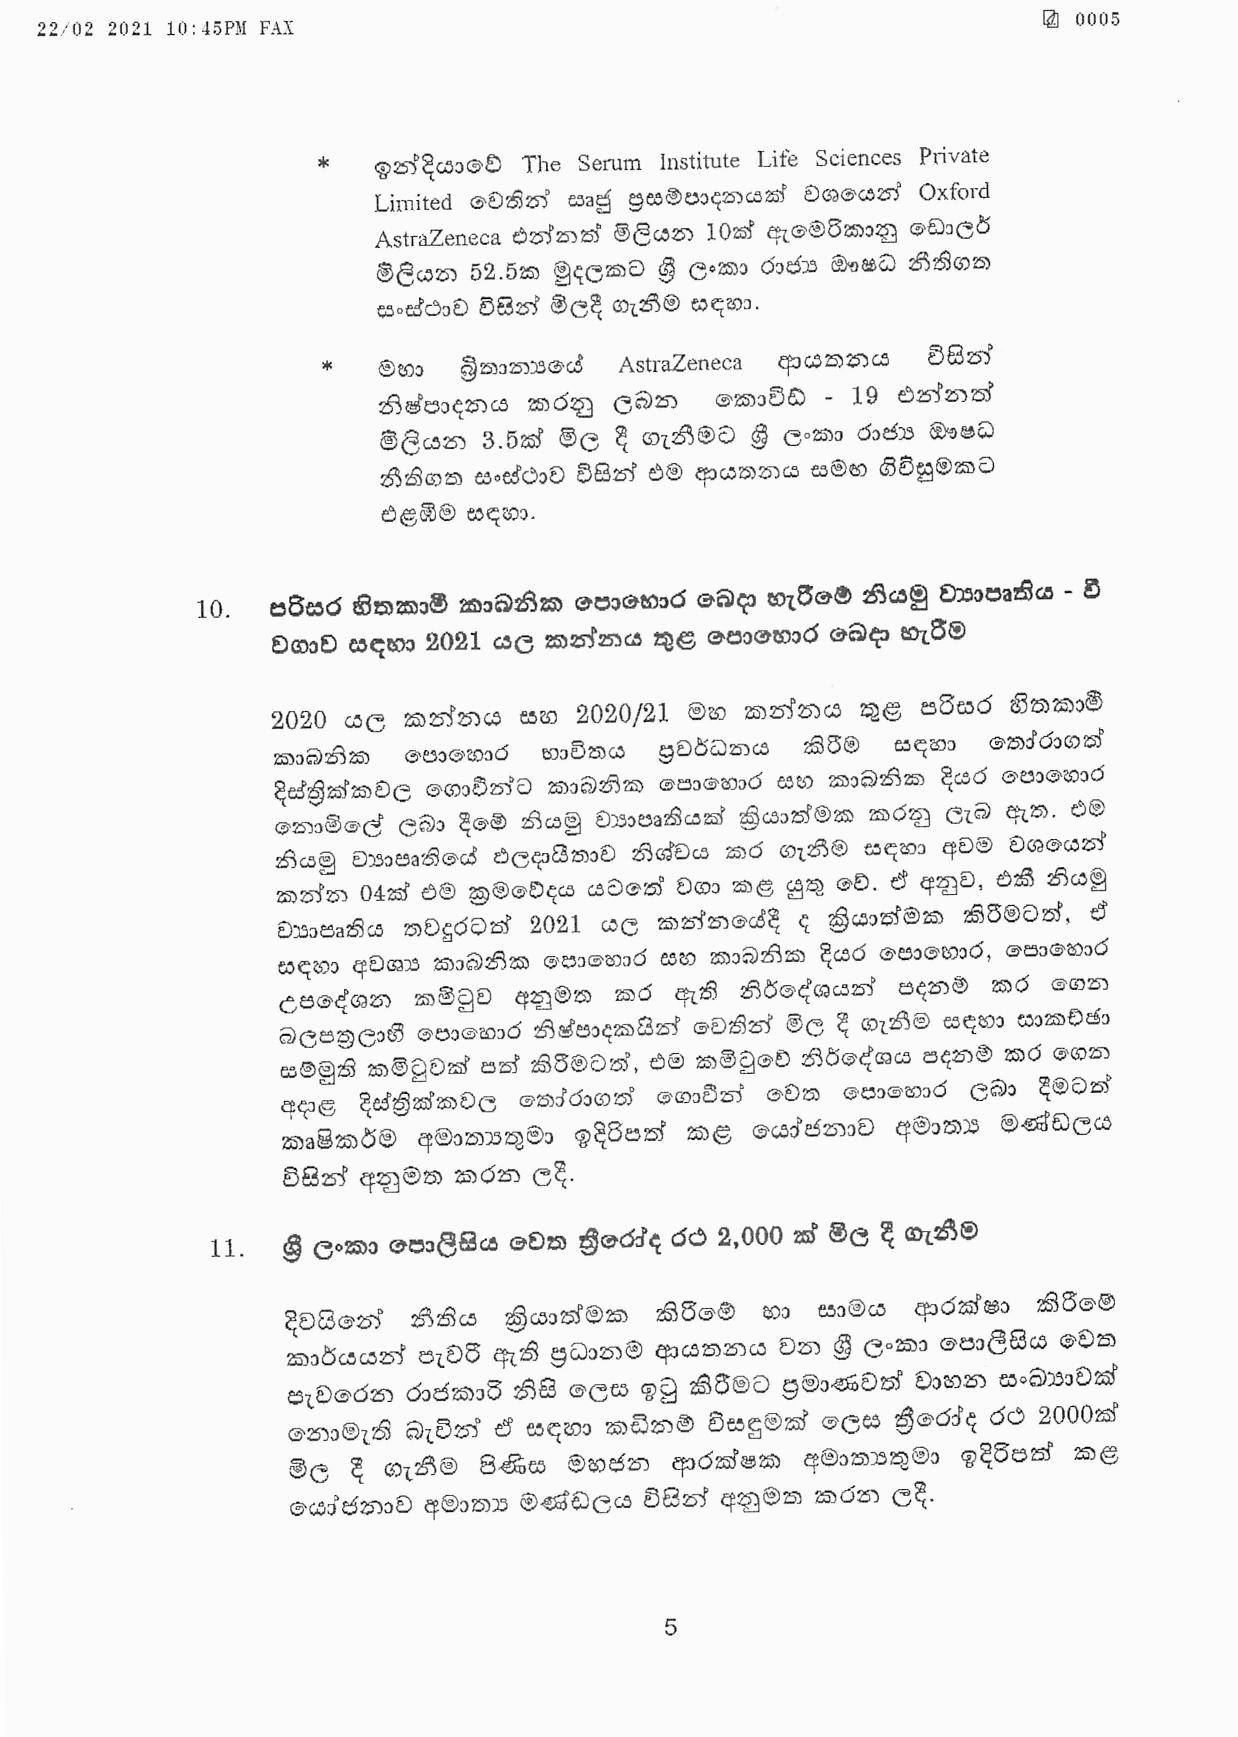 Cabinet Decision on 22.02.2021 page 005